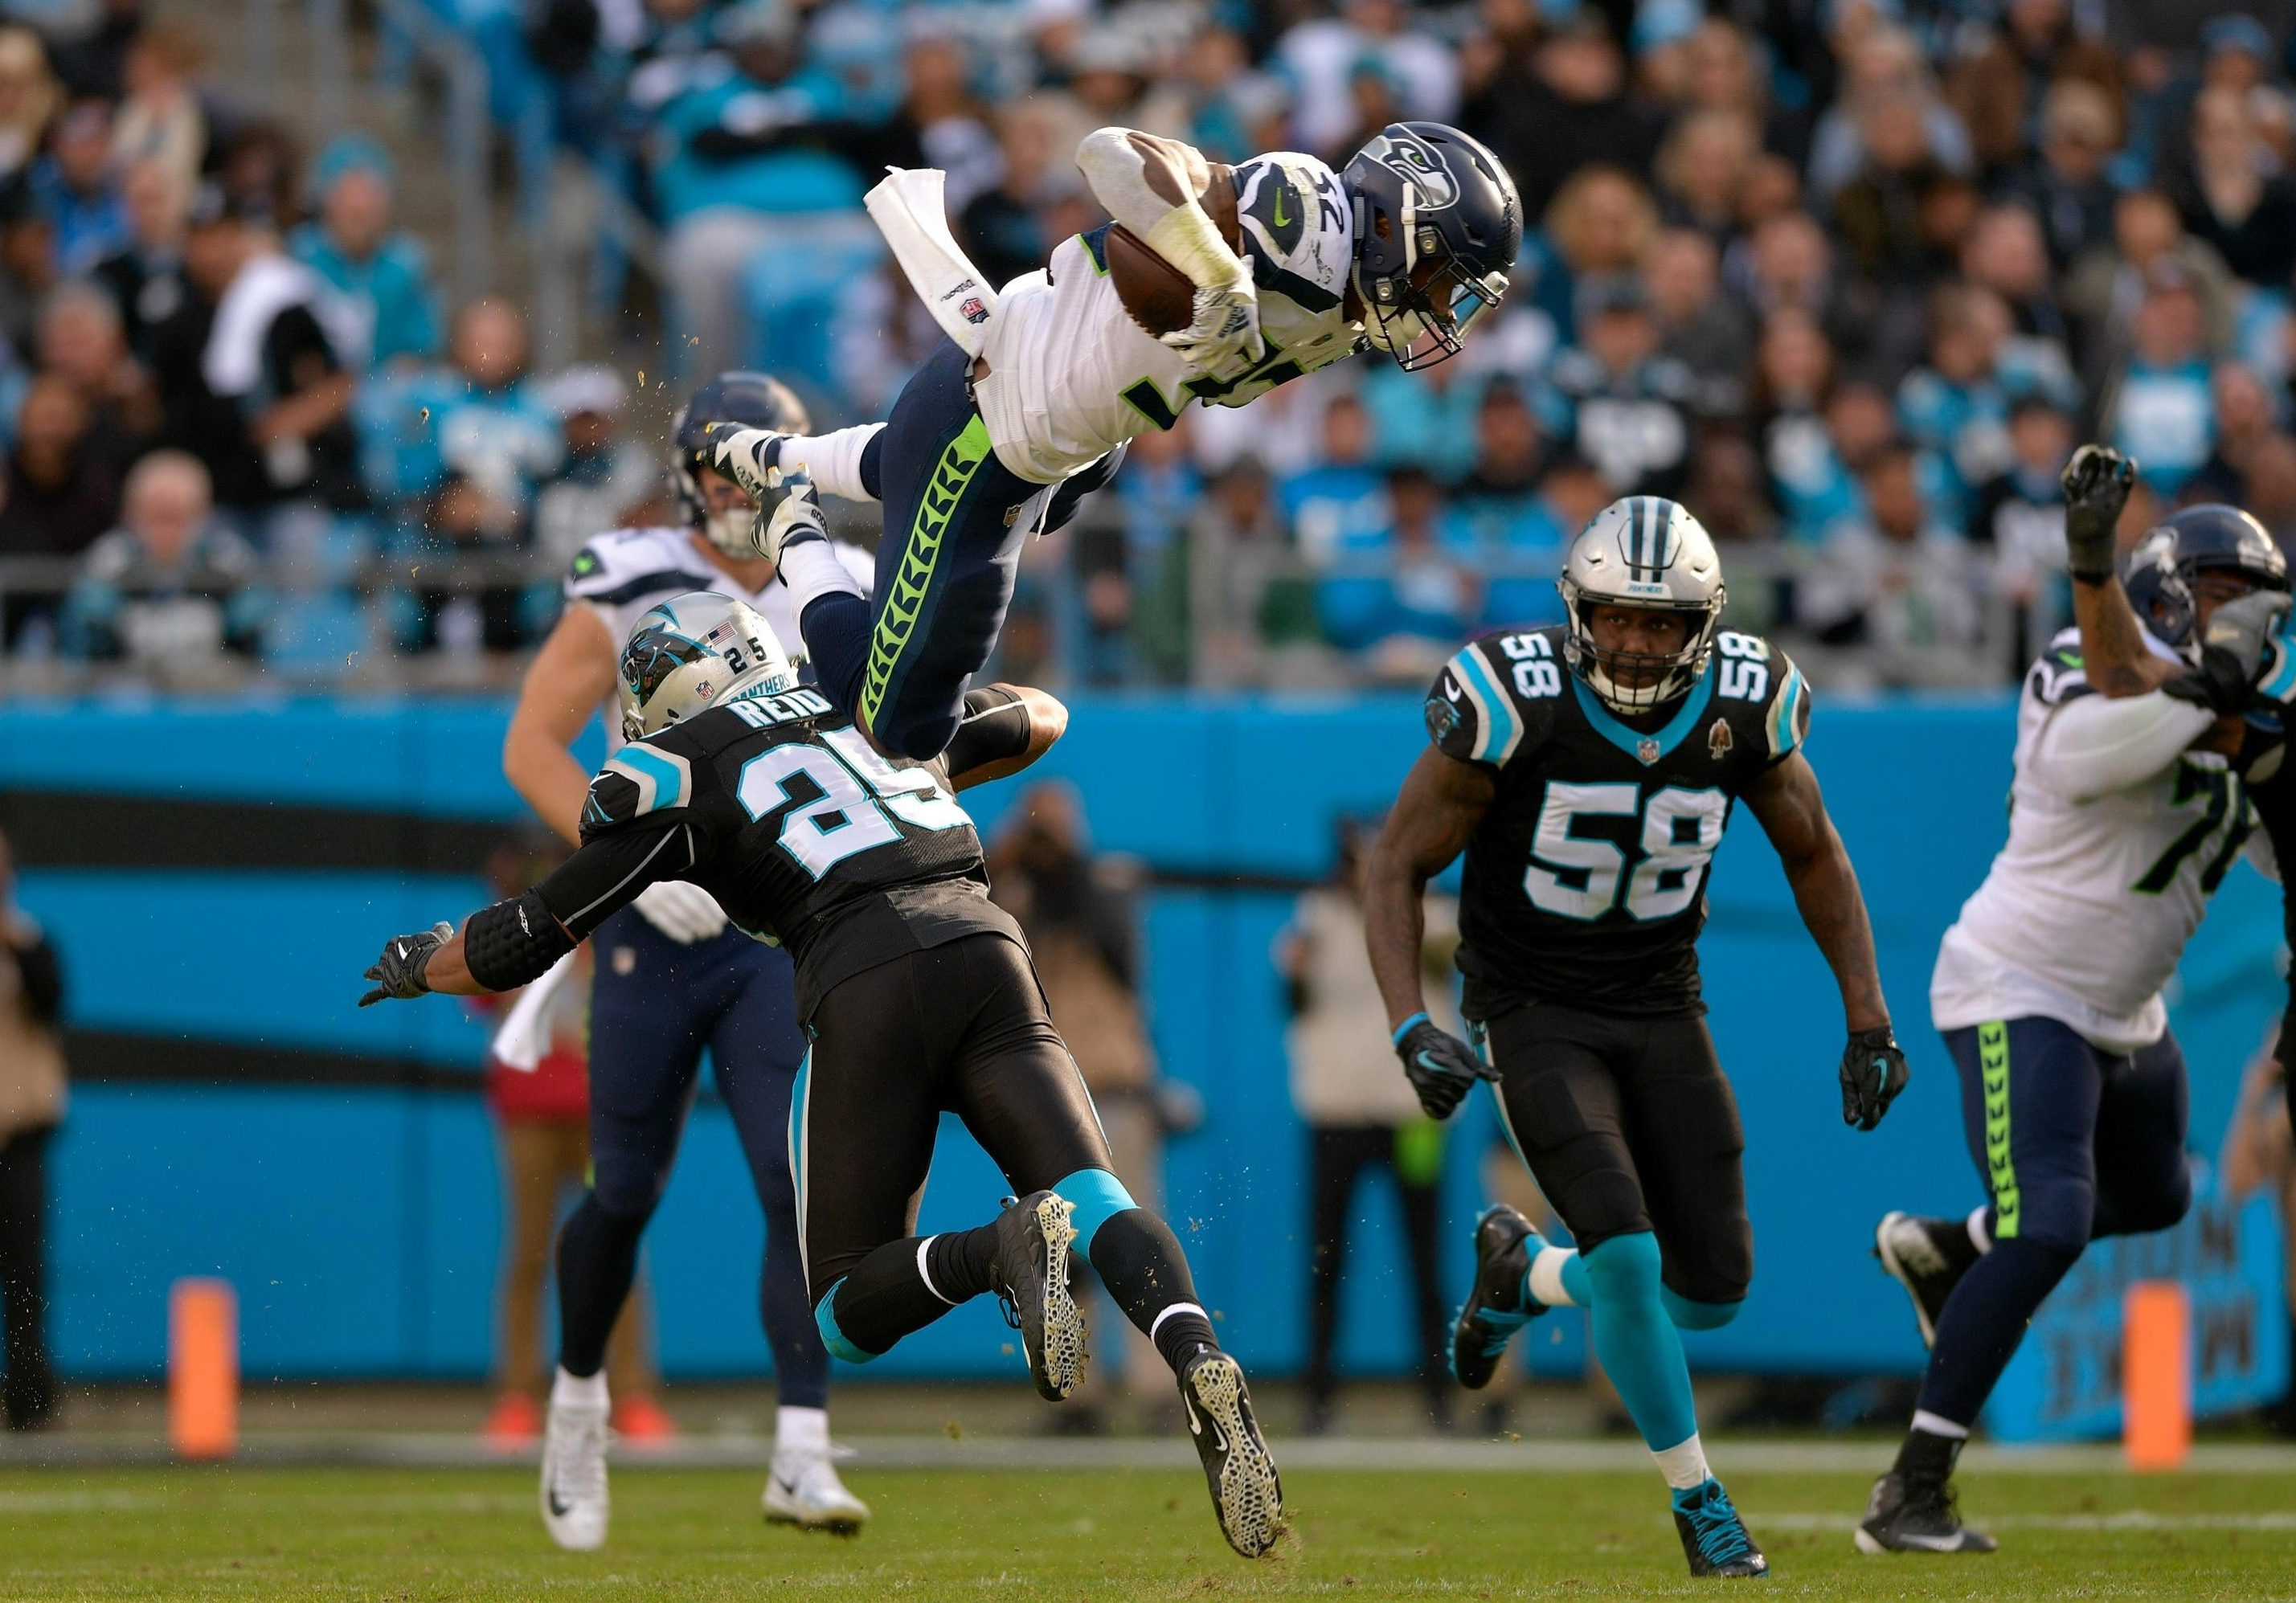 Carson attempted to hurdle Eric Reid but caught his ankle and was sent spinning into the air